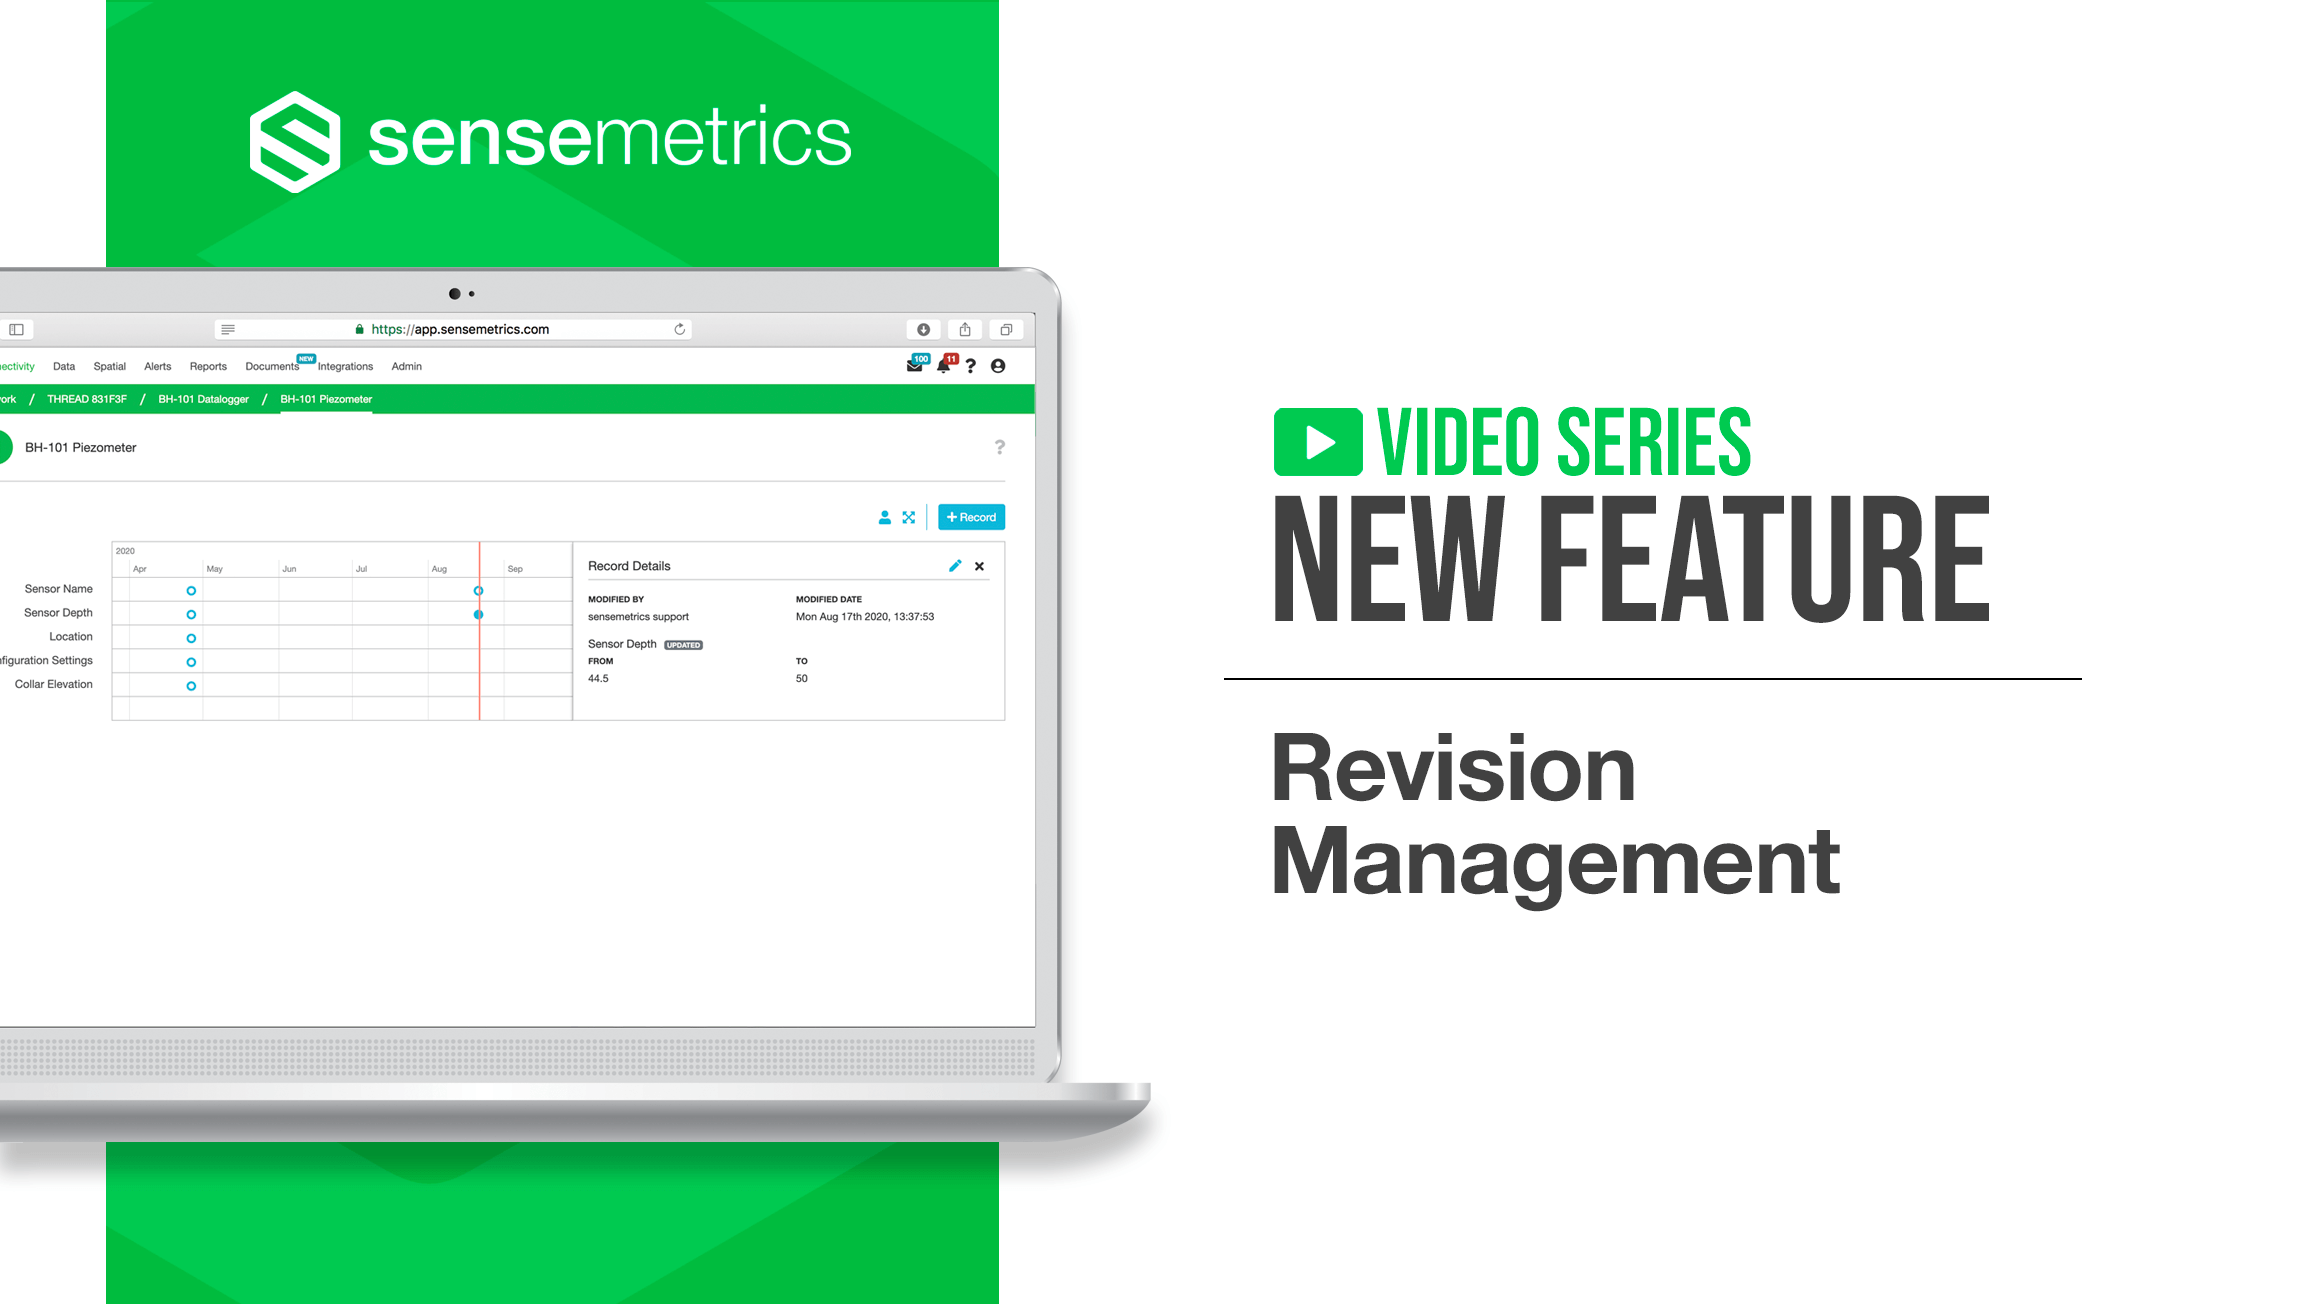 New Feature: Revision Management